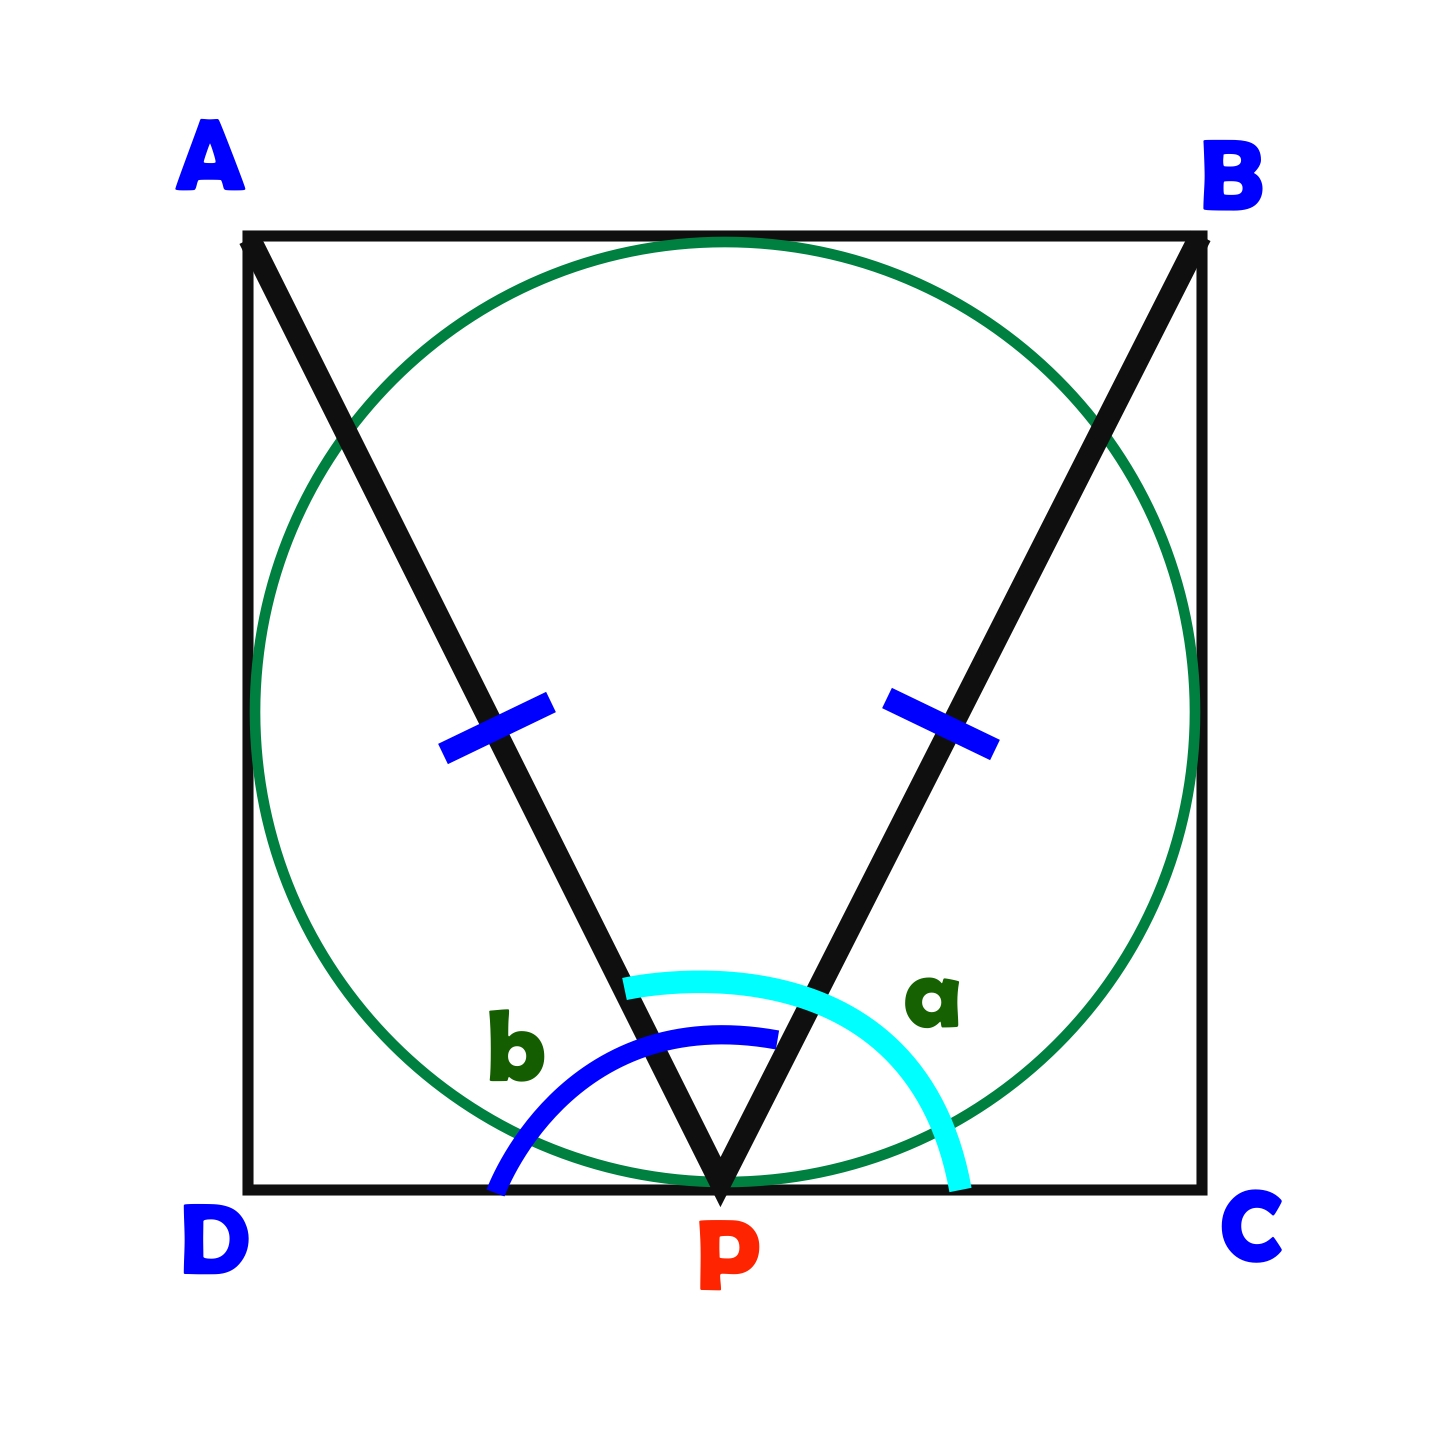 Trigonometry Geometry Puzzle With A Circle Inscribed